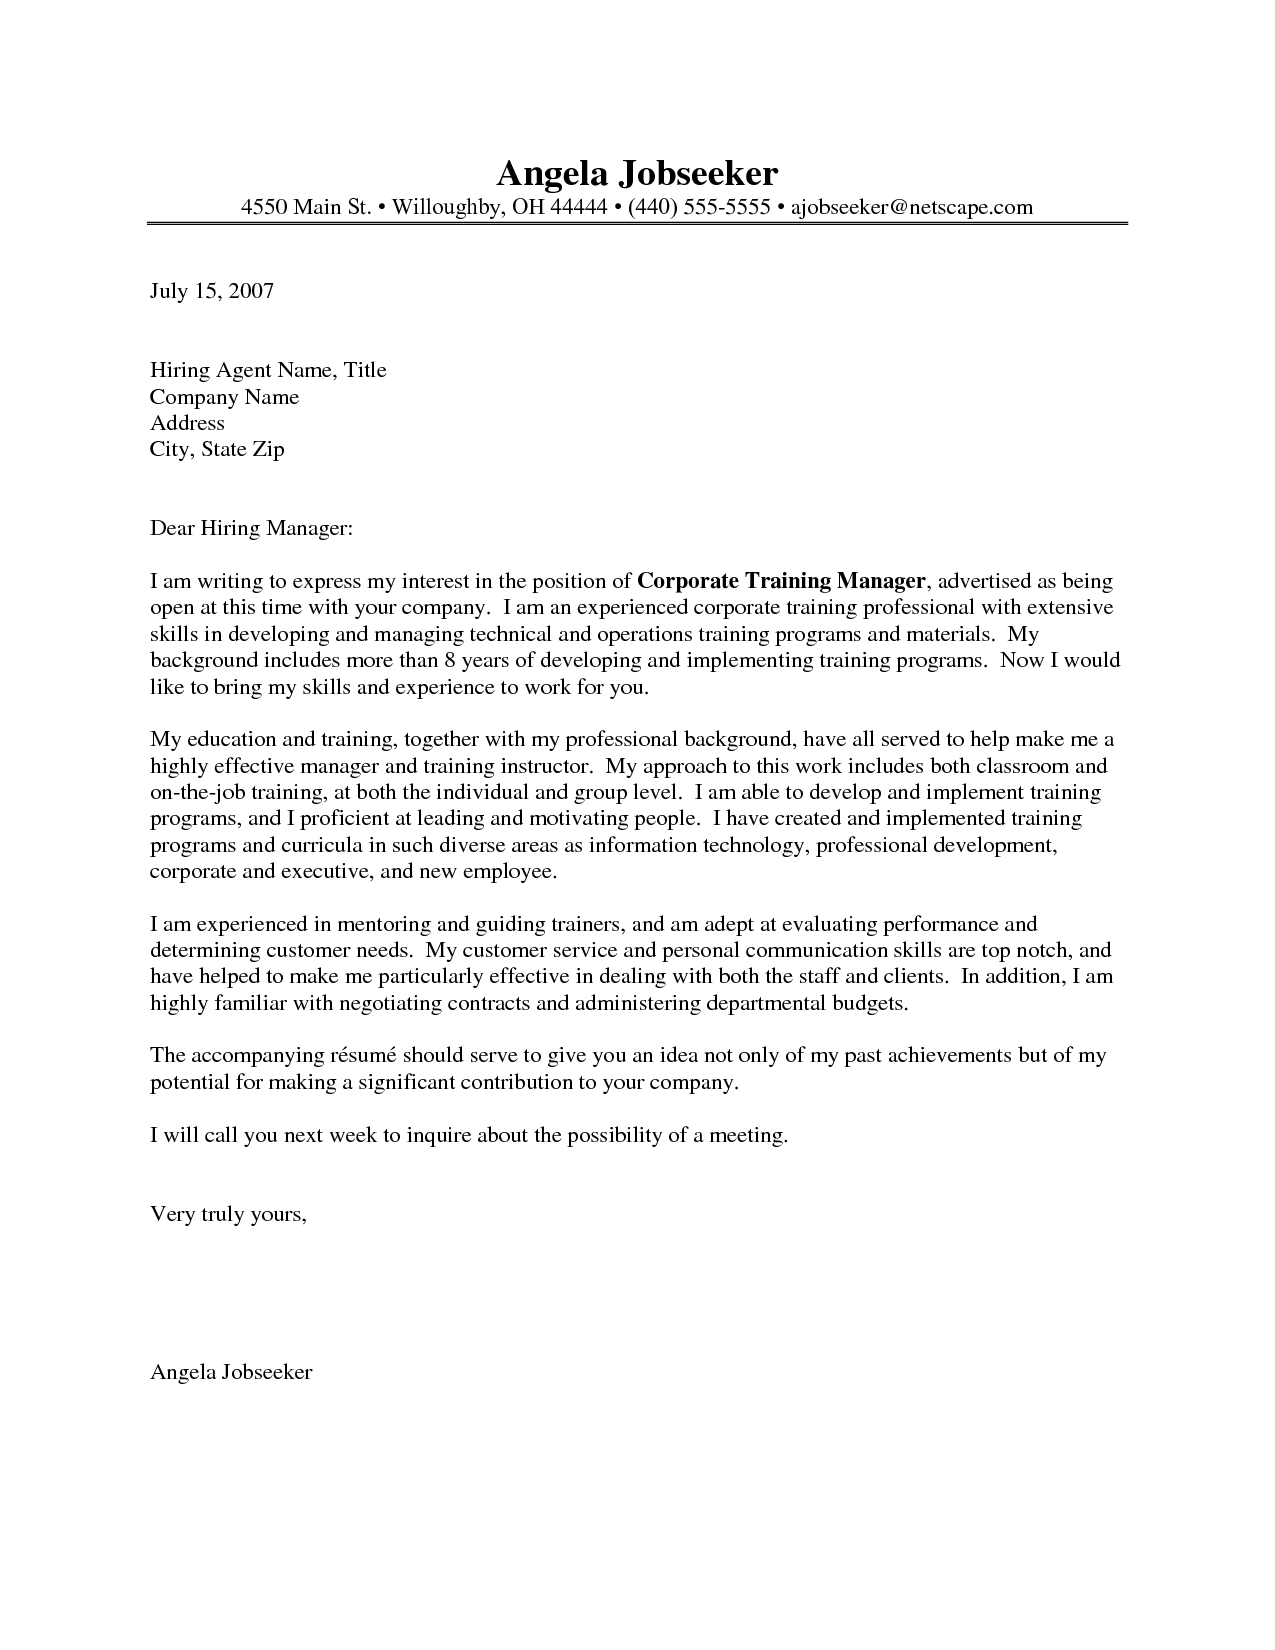 athletic trainer cover letter jianbochen pilates instructor resume - Pilates Instructor Resume